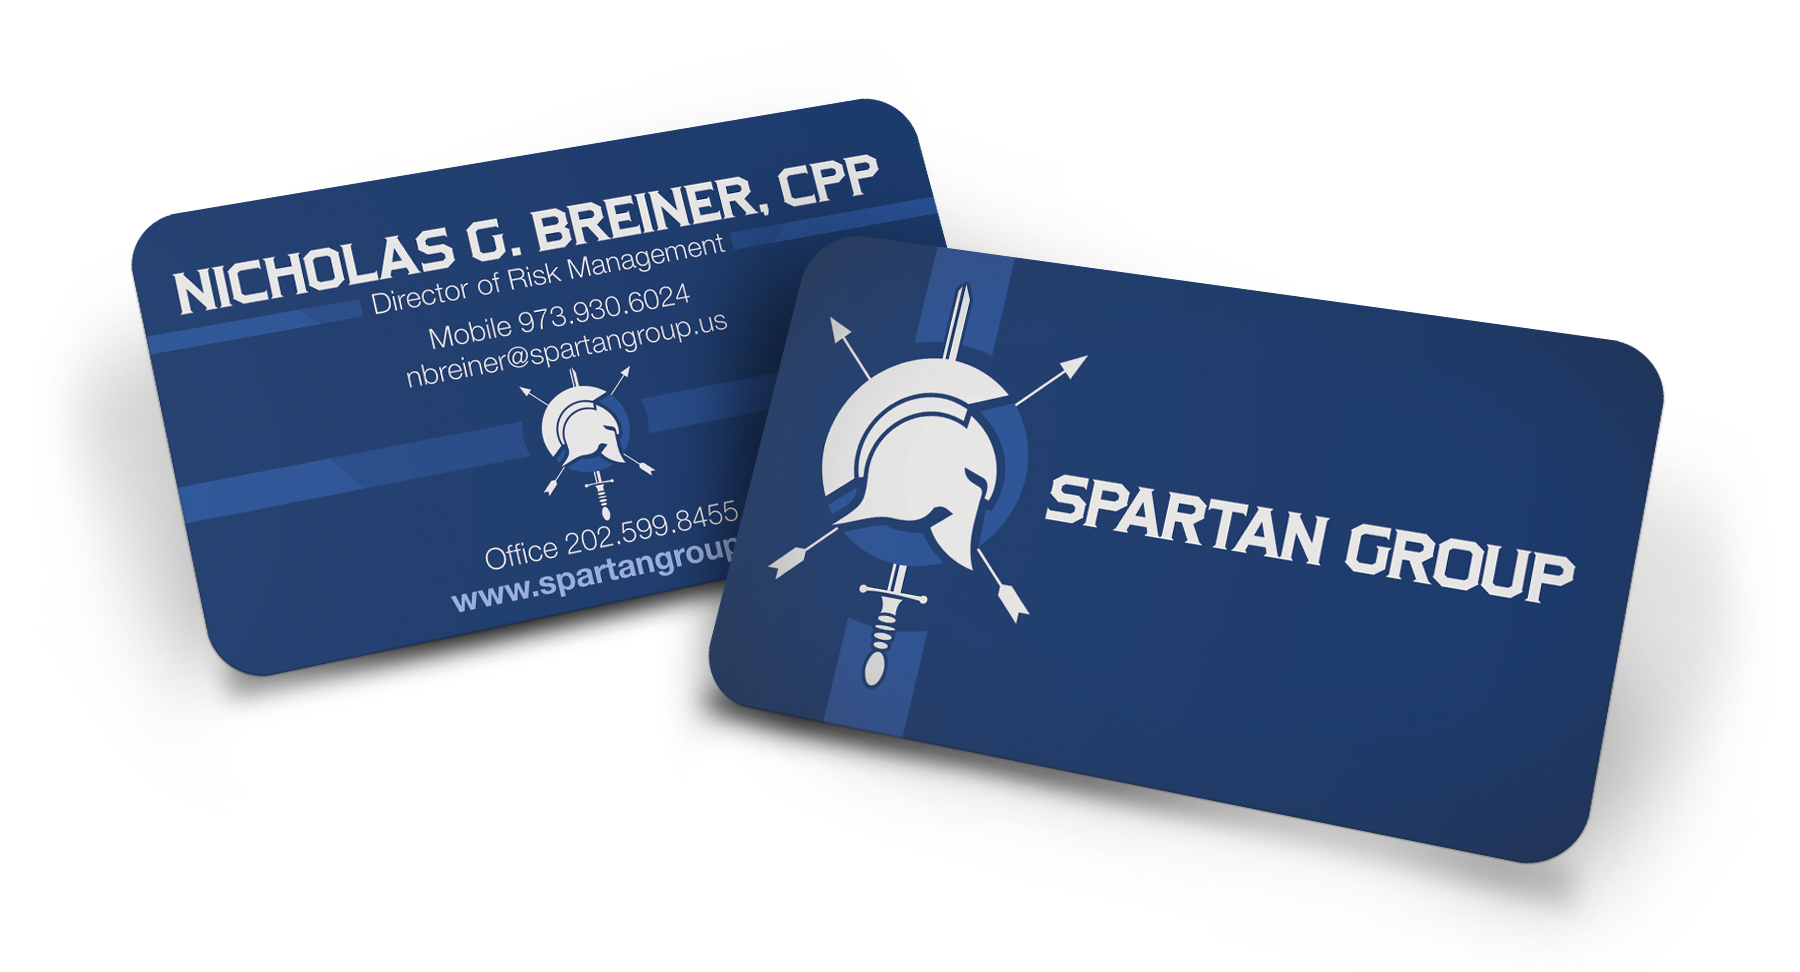 Business Card & Print Design | Screaming Lunatic Design Agency on mobile home parts, mobile home filters, mobile home tools, mobile home lights, mobile home stands, mobile home locks, mobile home covers, mobile home mirrors, mobile home anchors home depot, mobile home turnbuckles, mobile home stickers, mobile home add ons, mobile home paint, mobile home fittings, mobile home electrical, mobile home upgrades, mobile home lifts, mobile home wiring, mobile home hold downs, mobile home carriers,